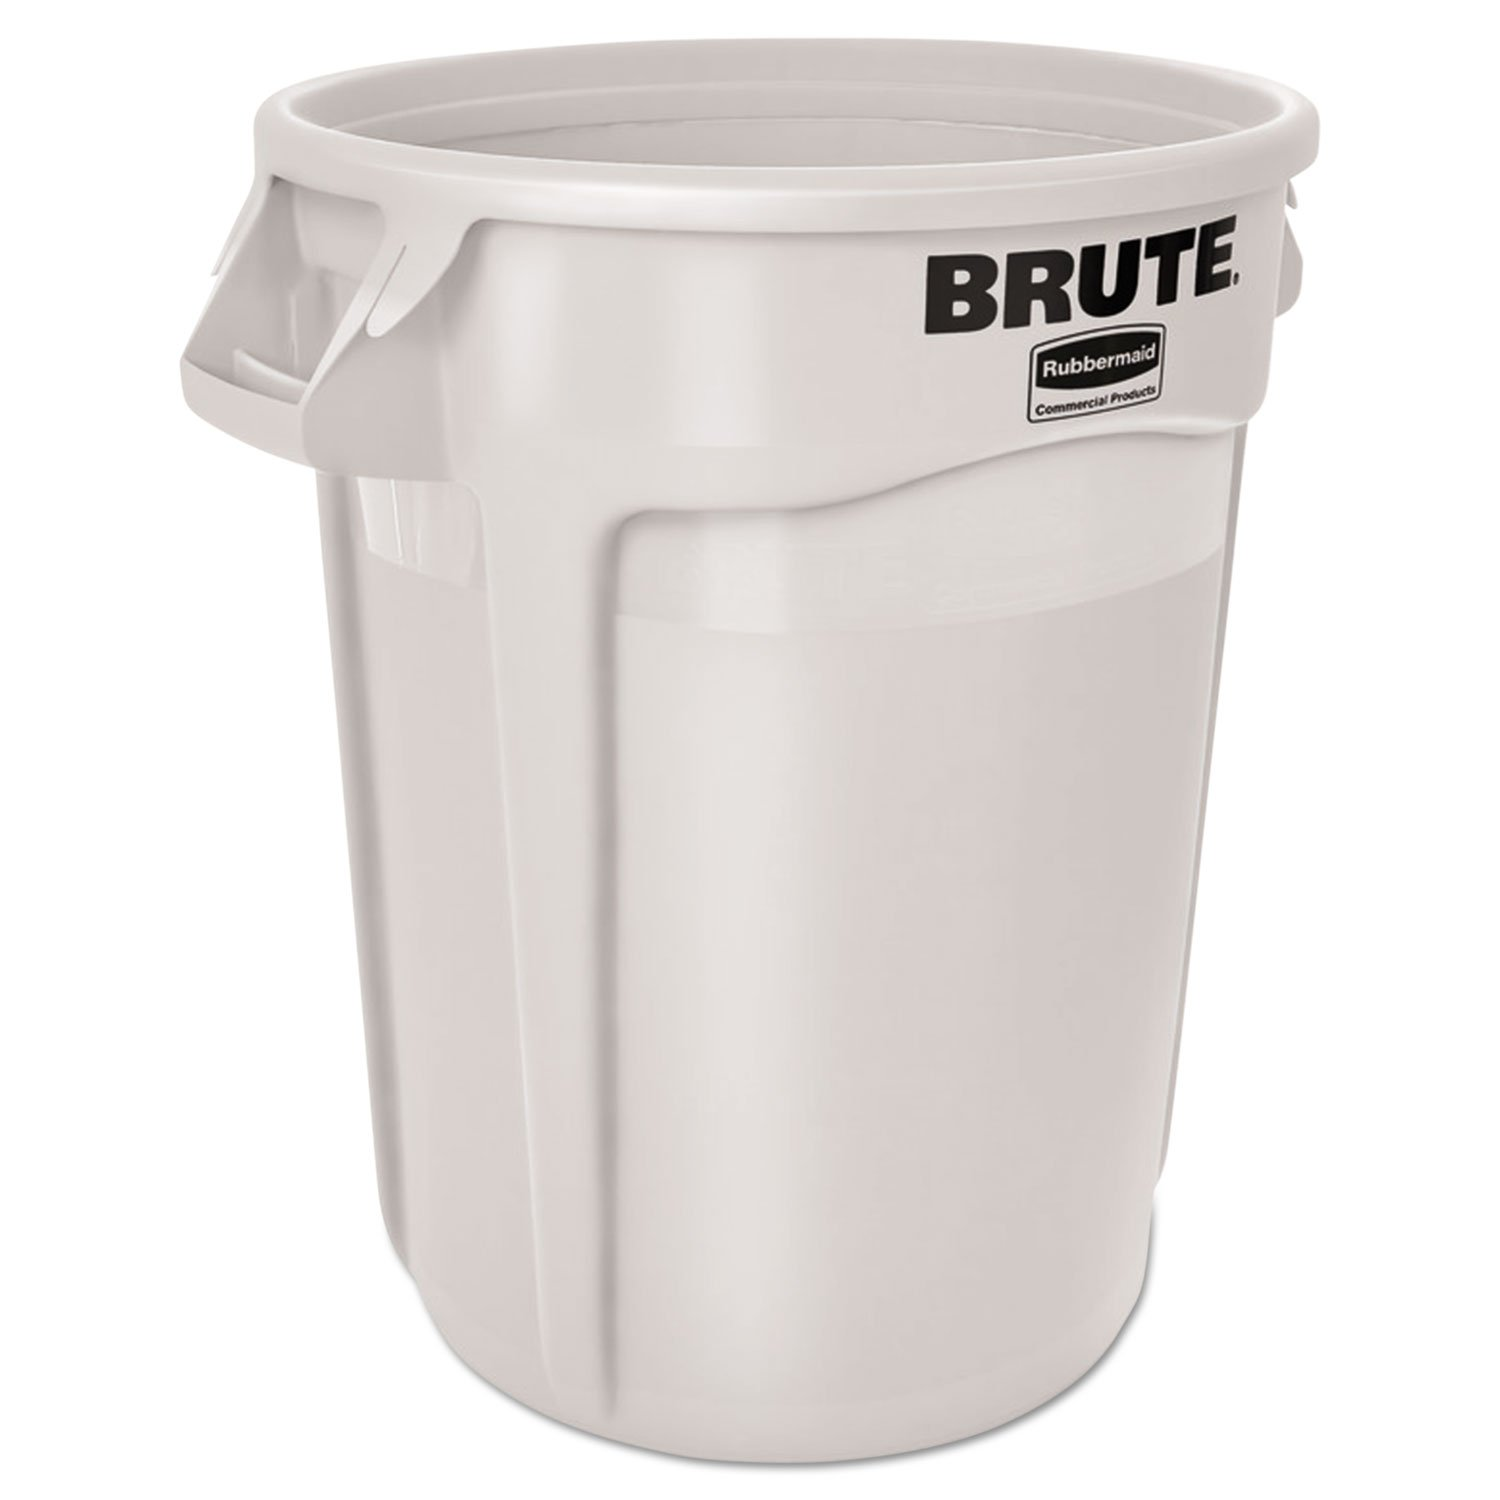 Rubbermaid Commercial BRUTE Trash Can, 32 Gallon, White, FG263200WHT